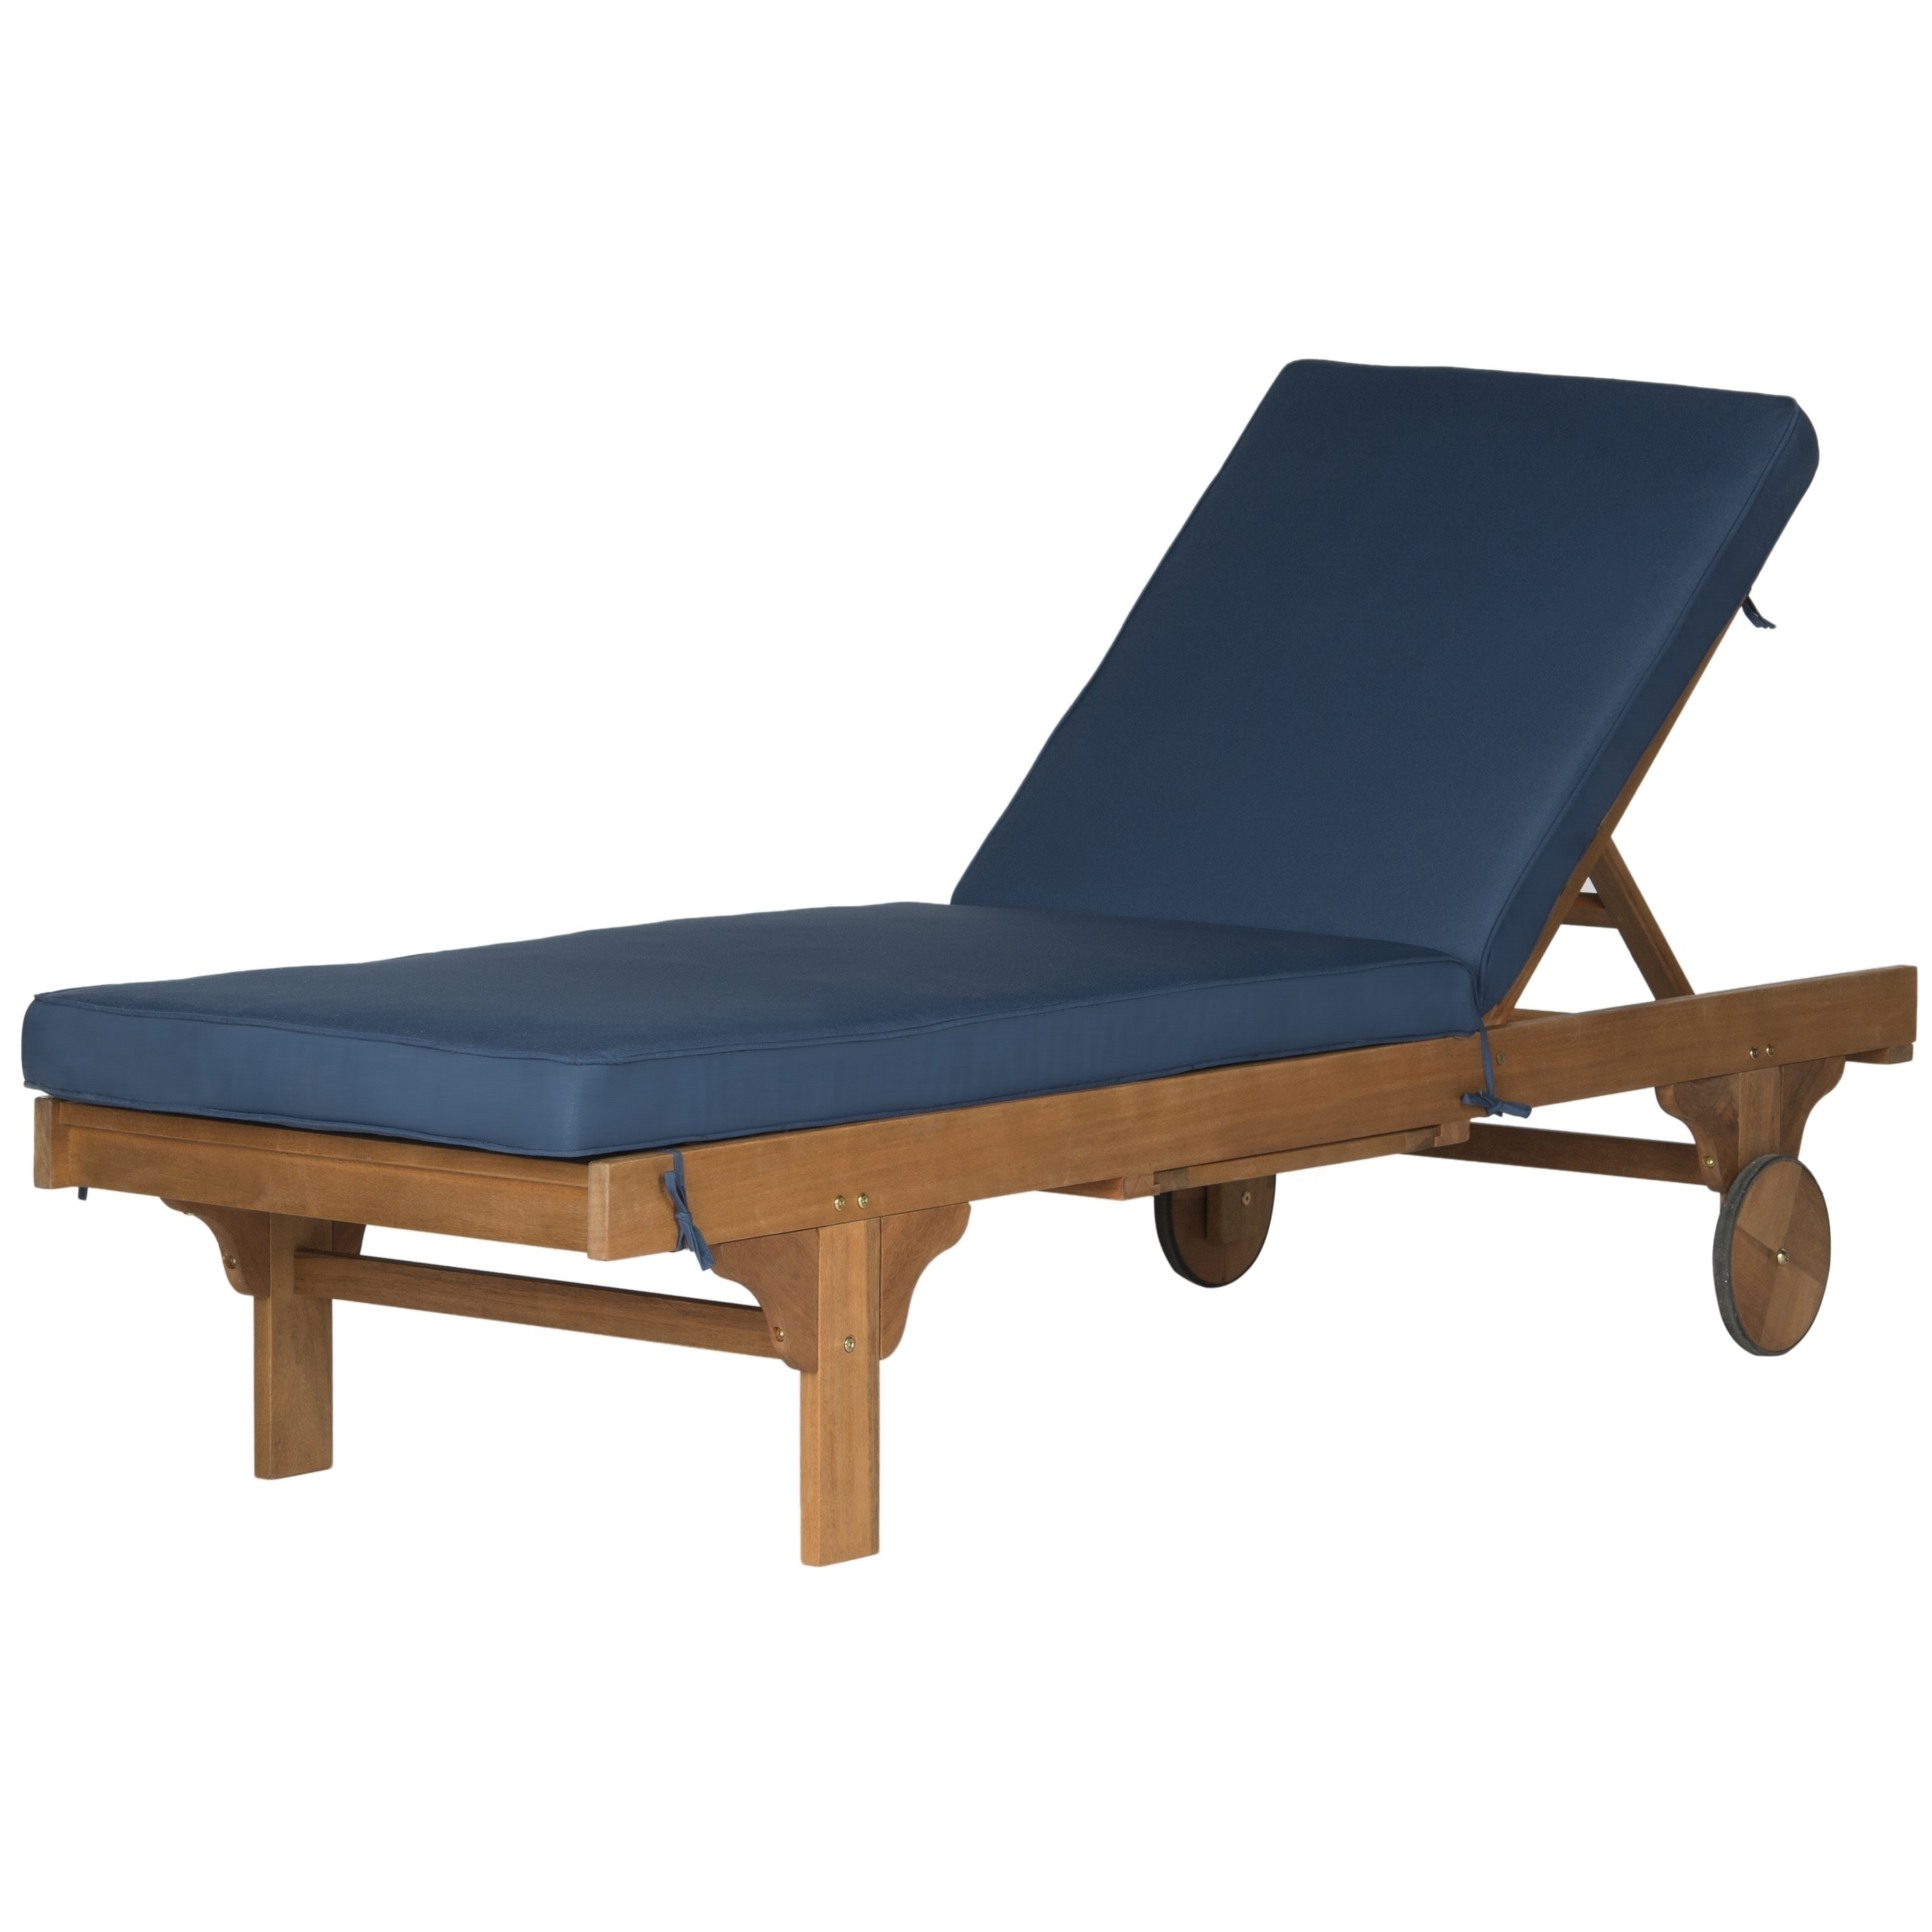 Safavieh Outdoor Living Newport Brown/ Navy Adjustable Chaise For Fashionable Newport Chaise Lounge Chairs (View 7 of 15)